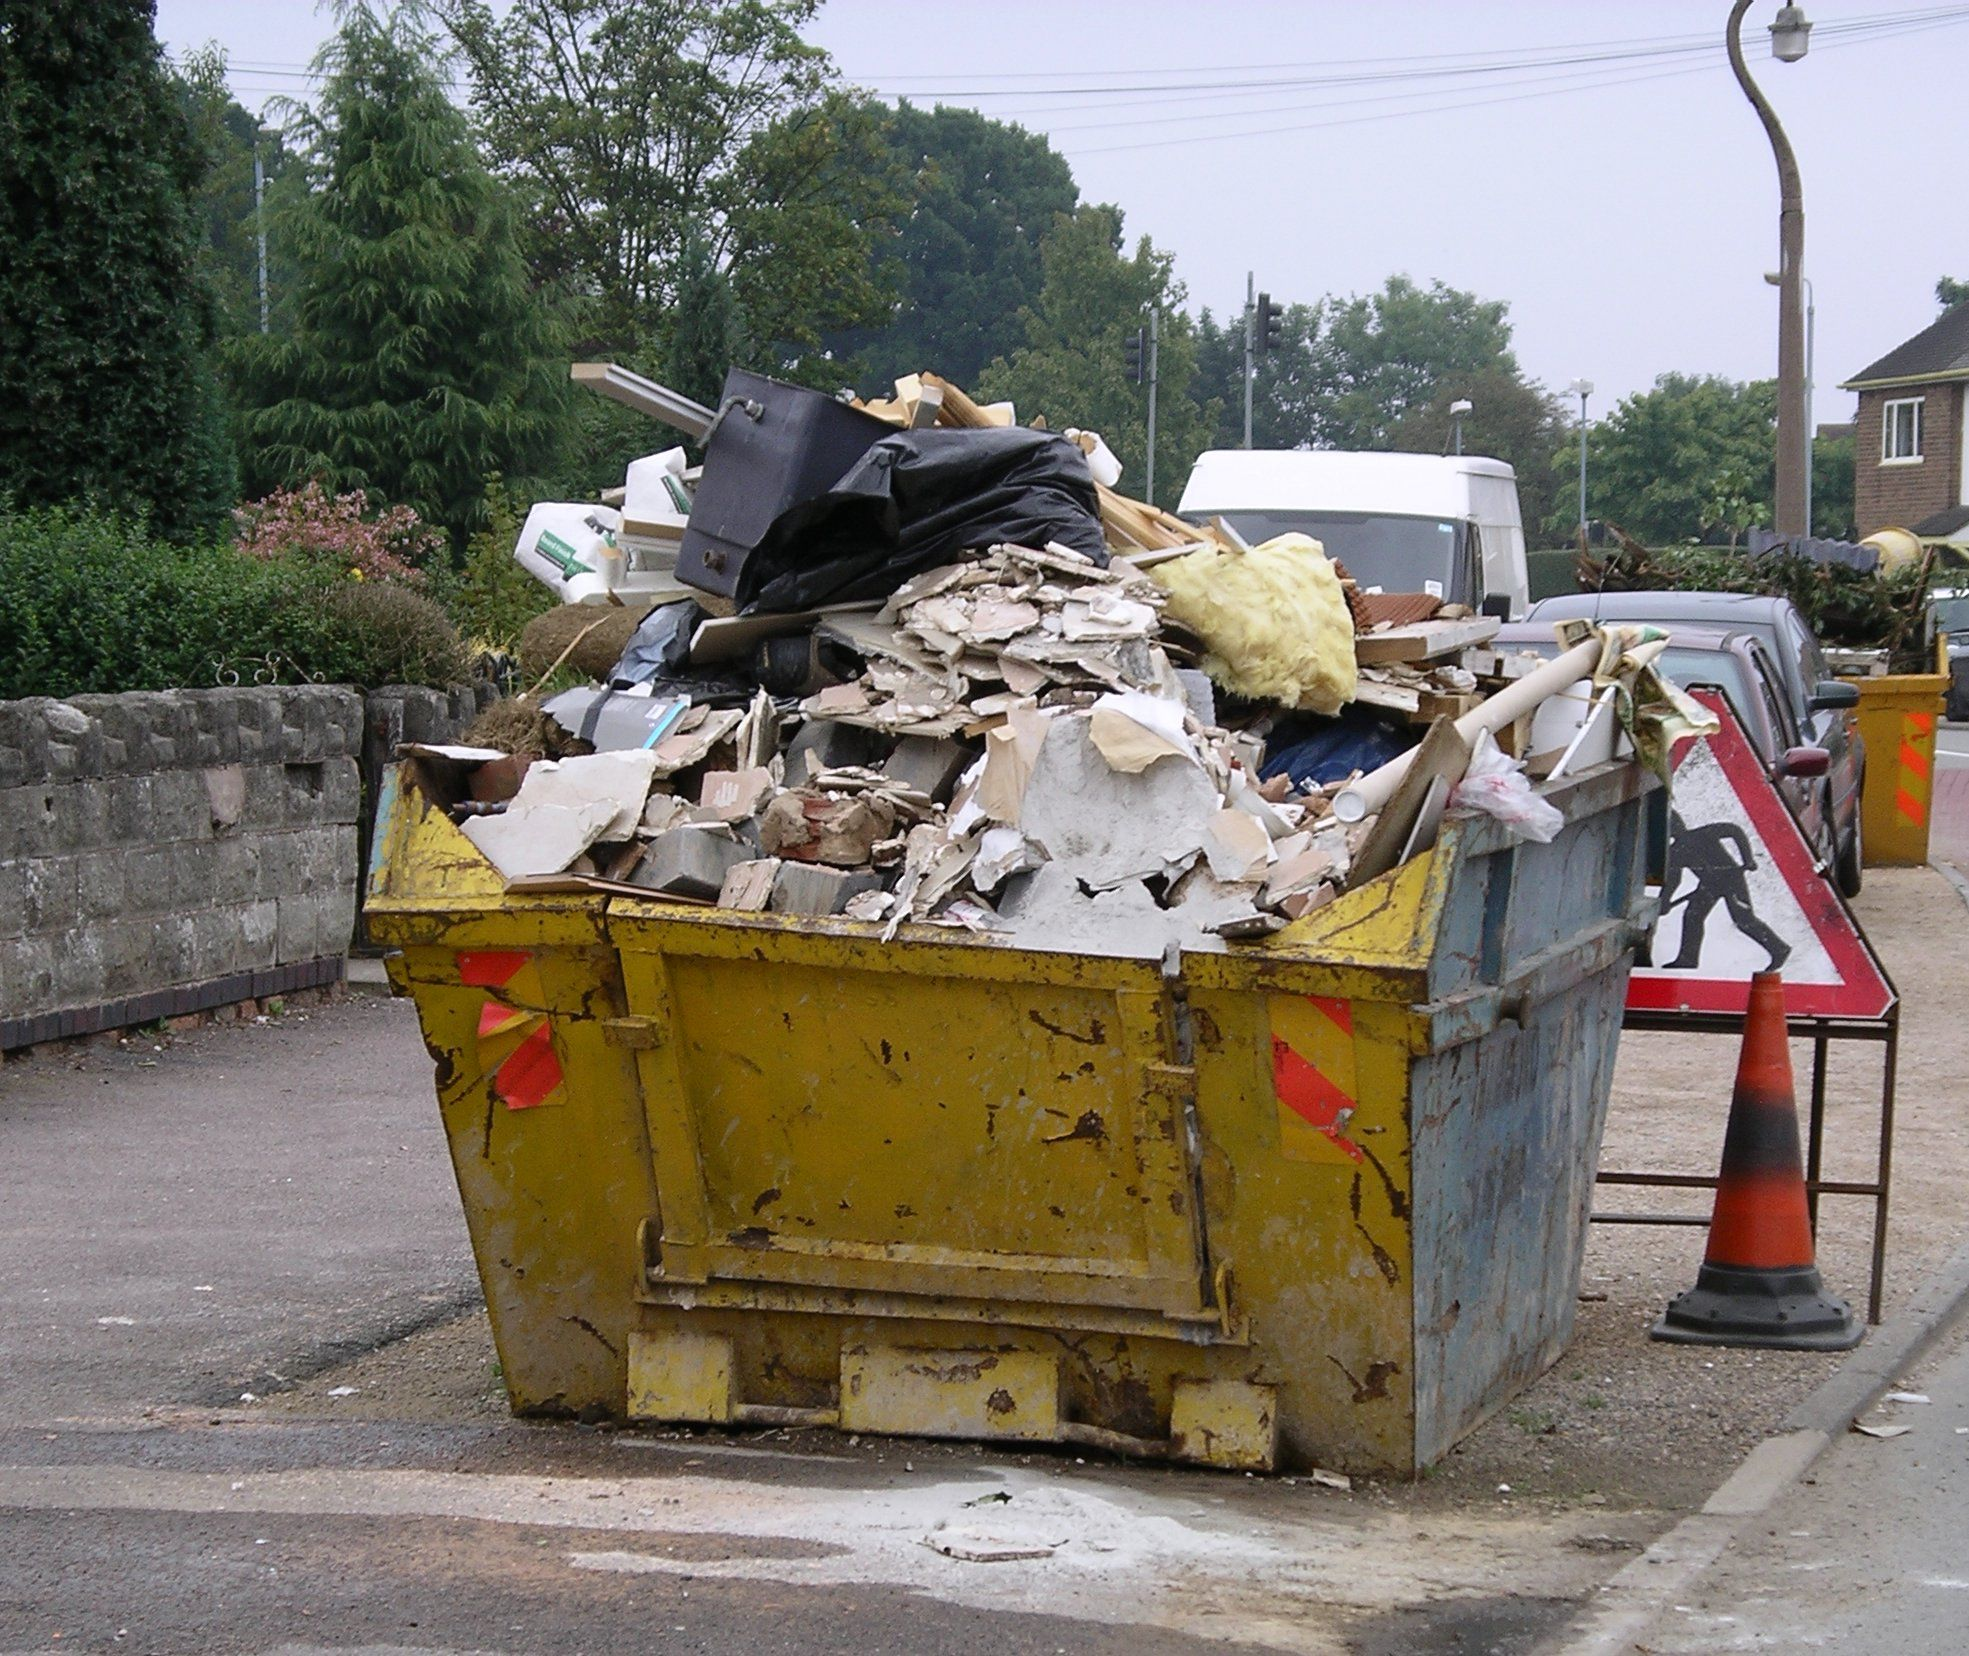 Pin By Tsjunk Removal On T S Junk Removal Rubbish Removal Removal Company Construction Waste